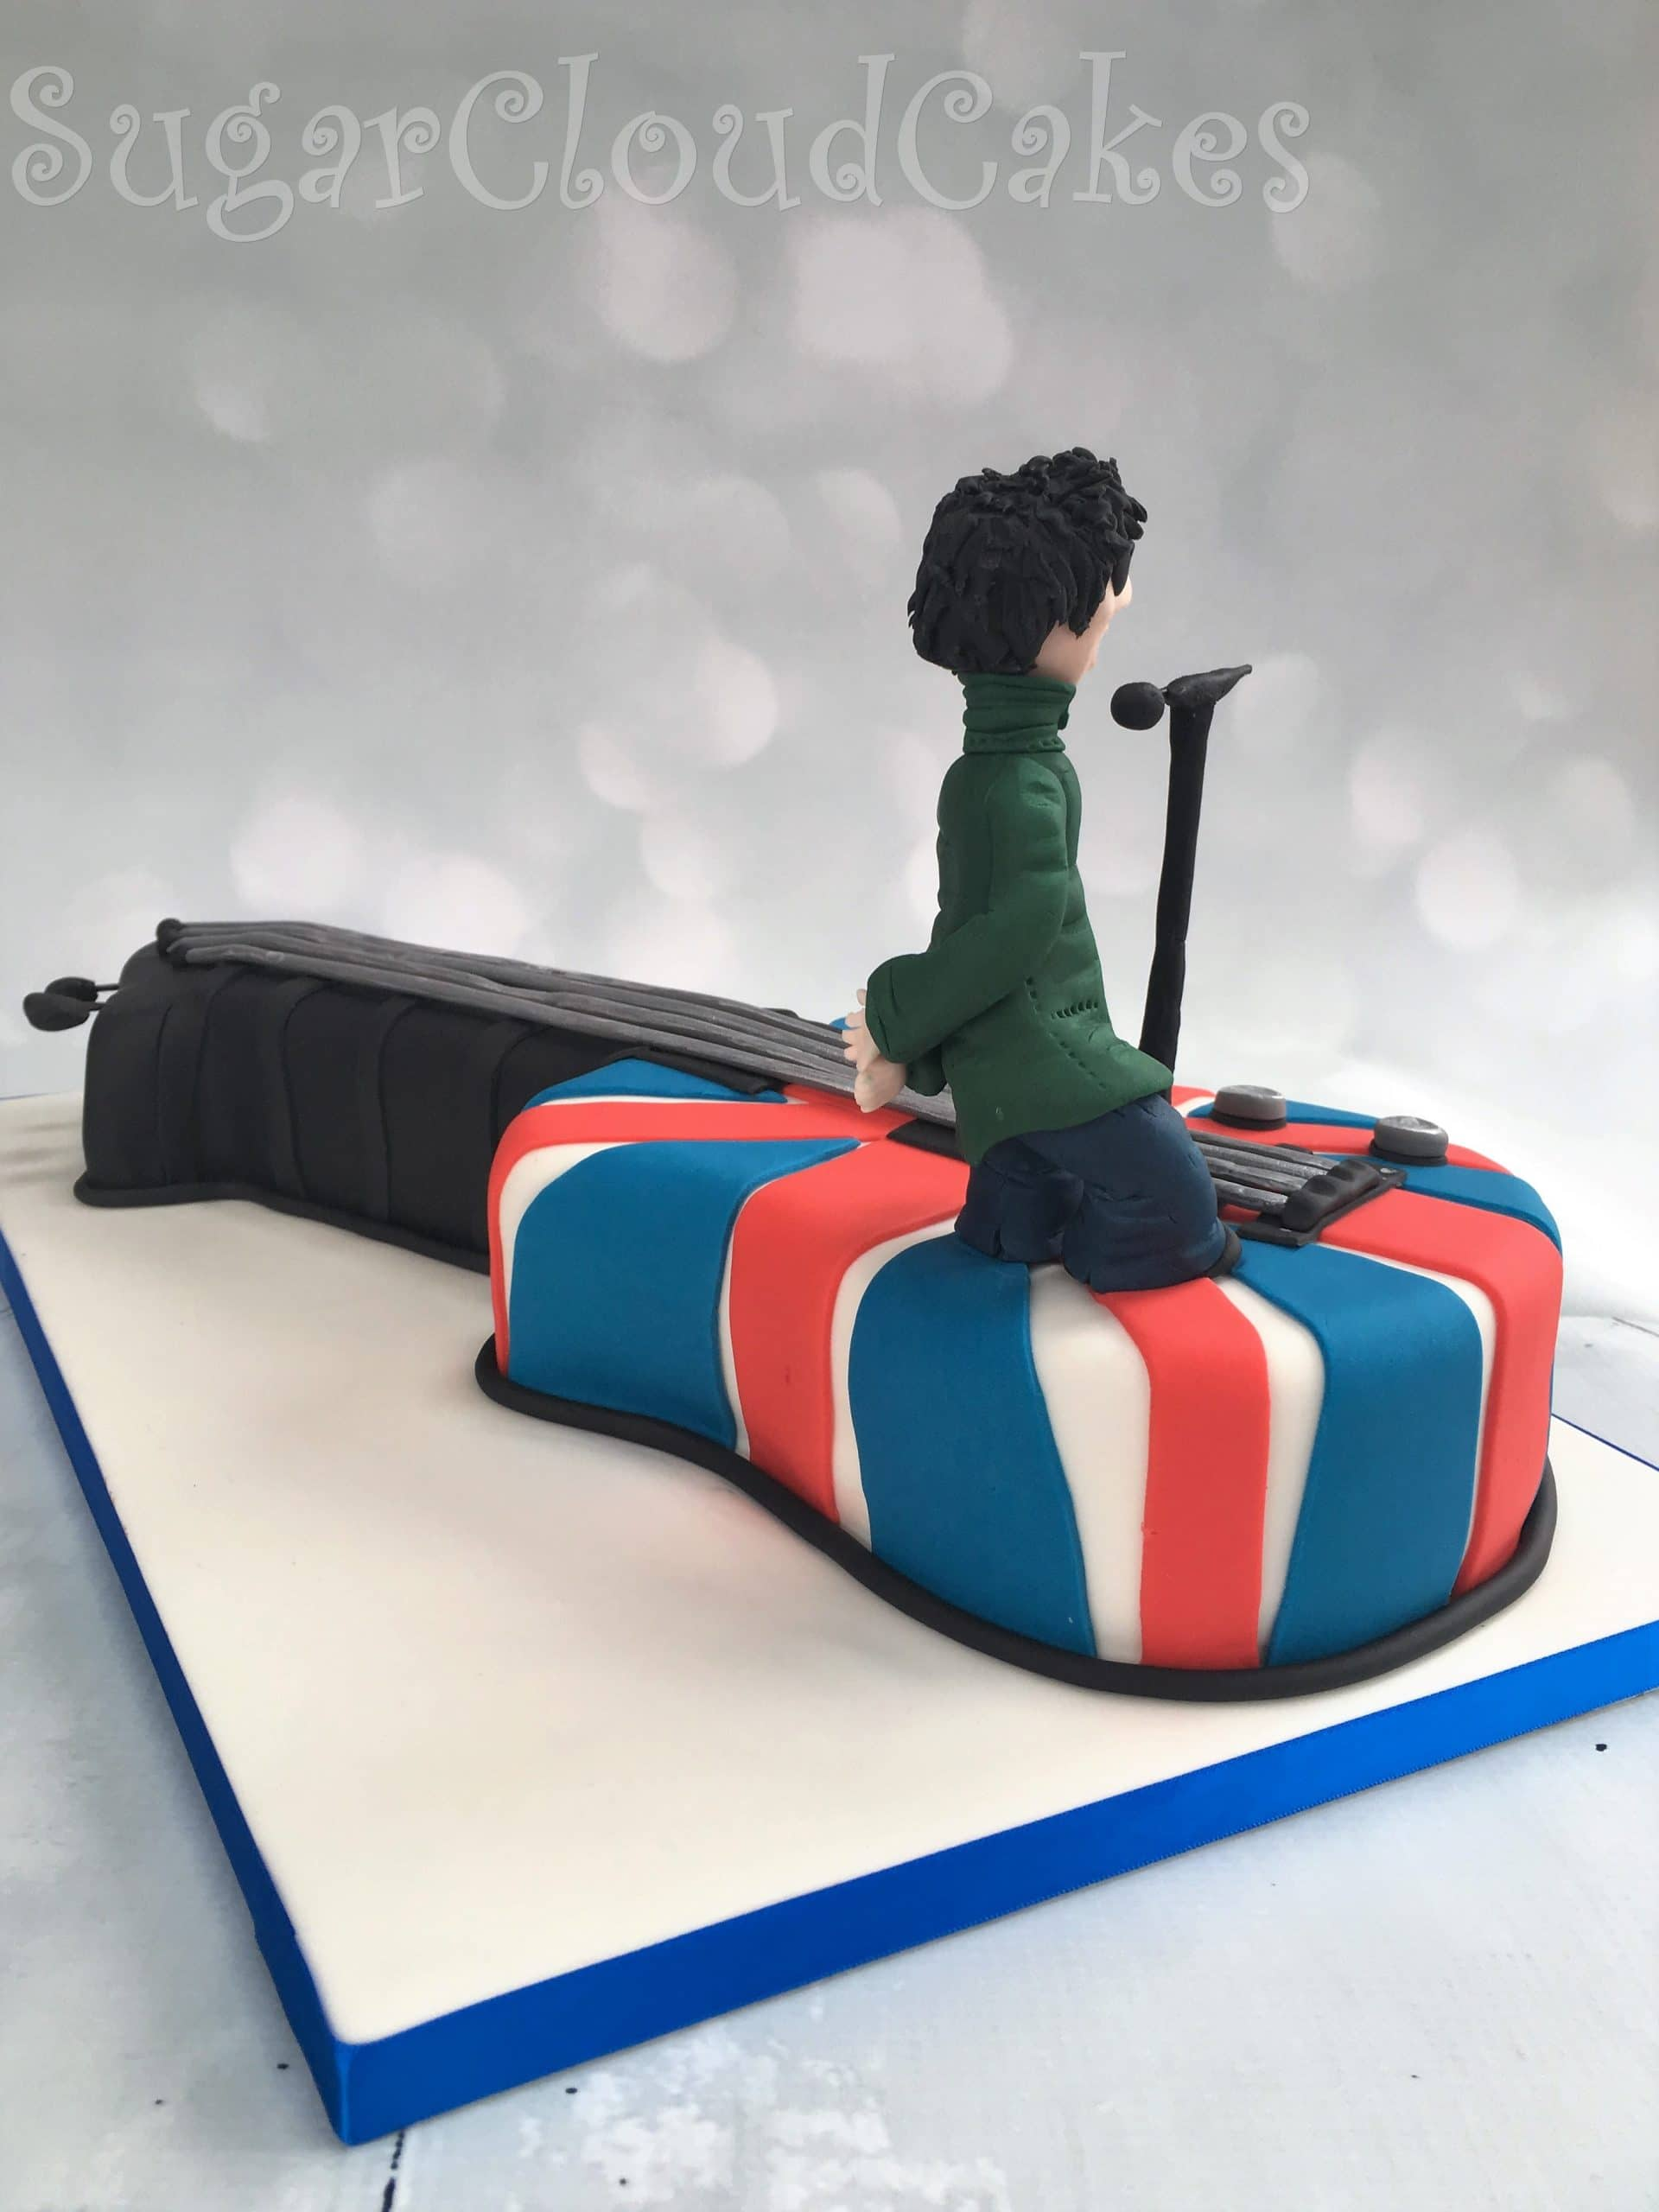 Liam Gallagher guitar shaped birthday cake